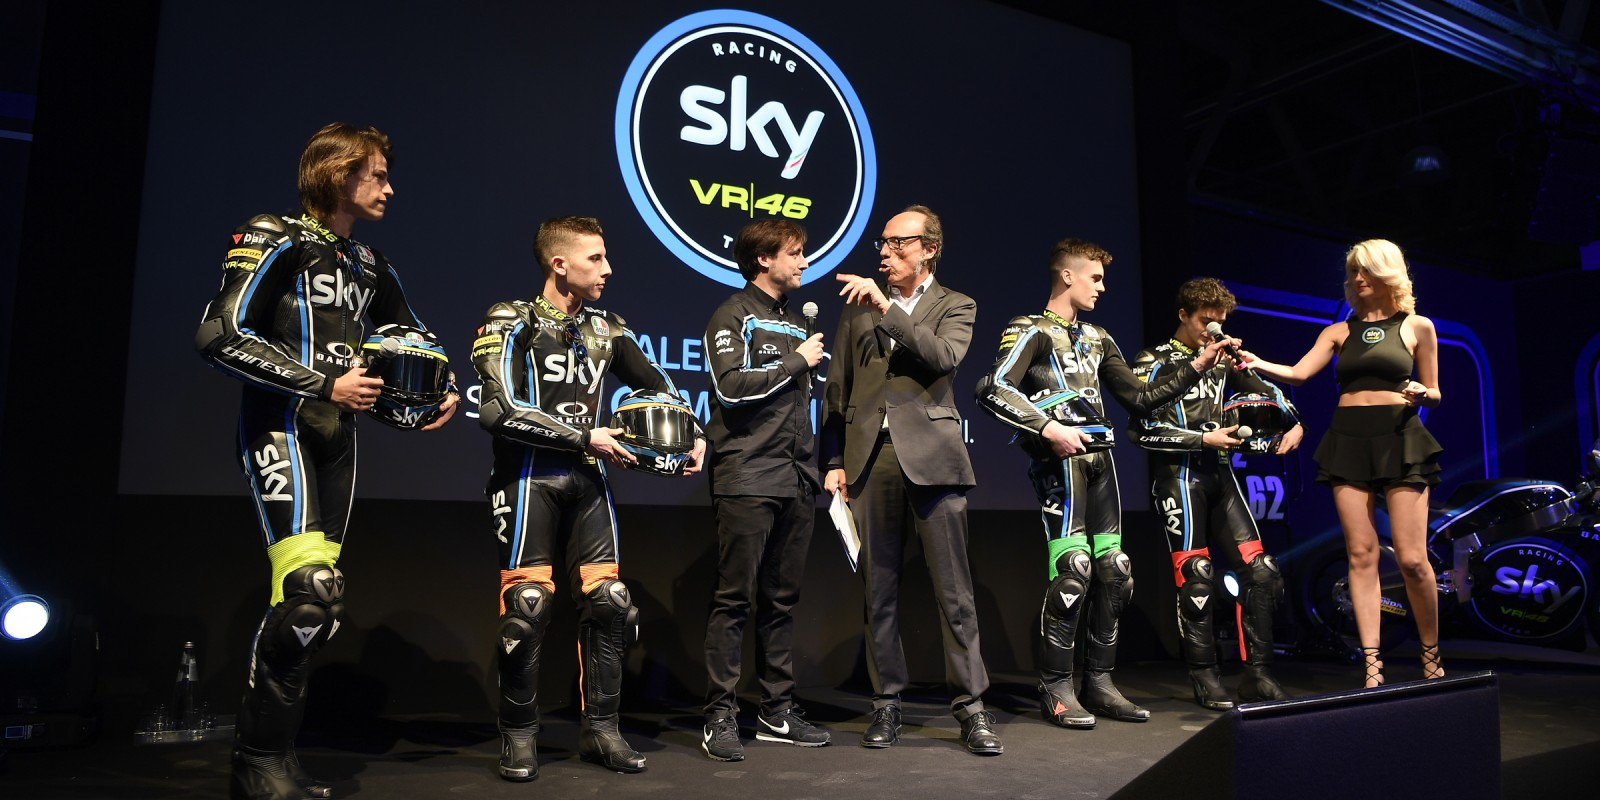 Scenes from the 2017 Sky Racing Team VR46 launch in Milan